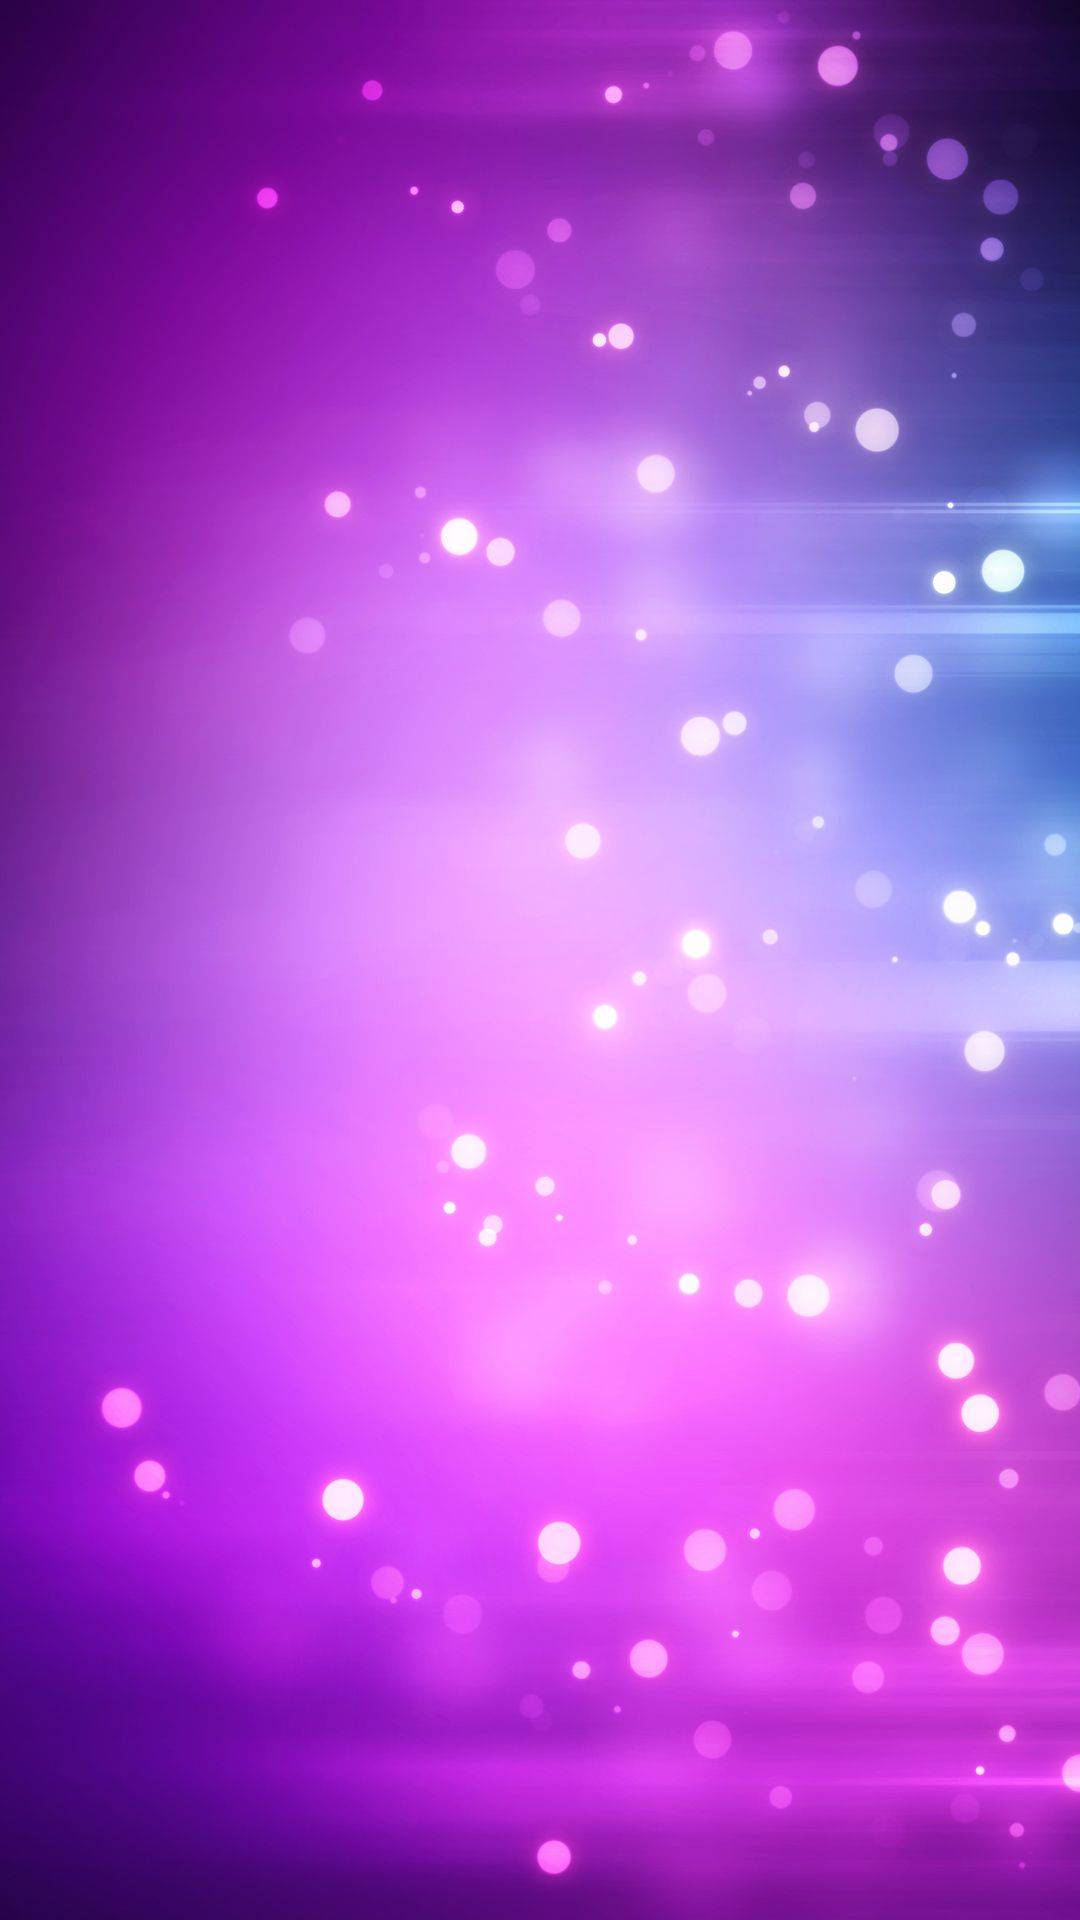 beautiful pink purple blue abstract hd mobile wallpaper